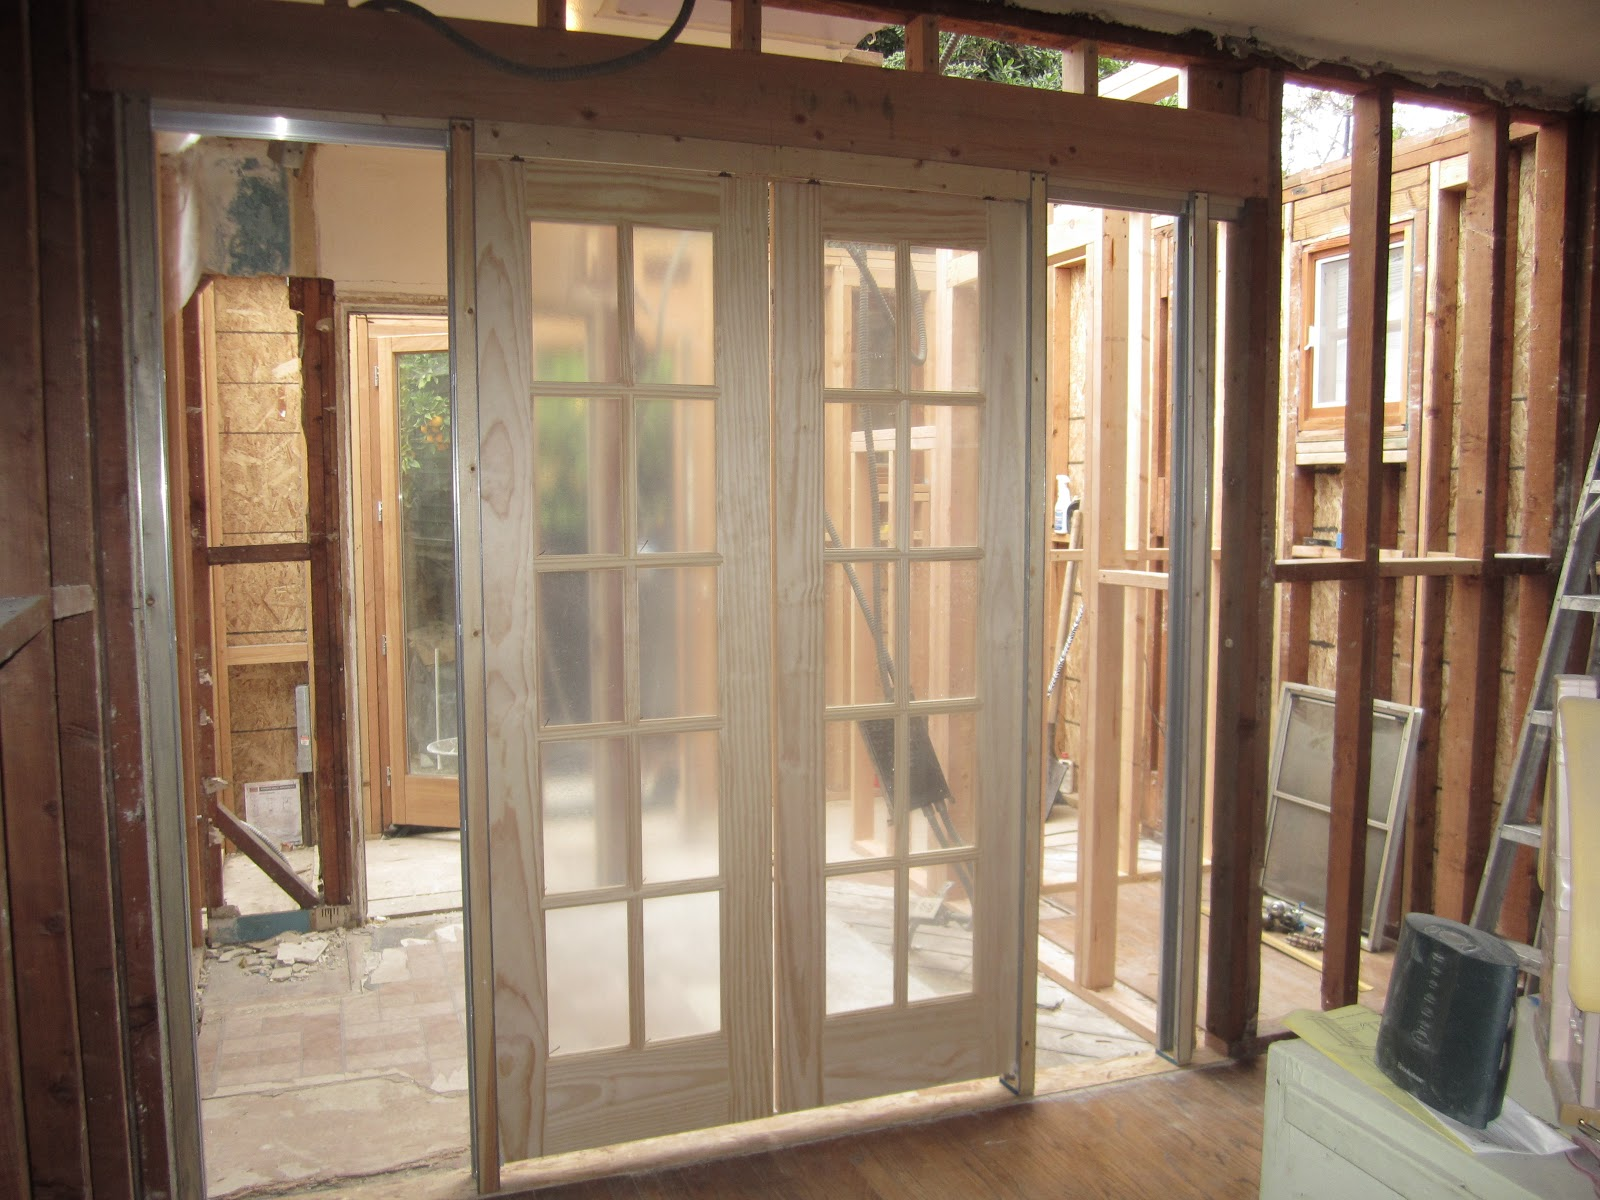 From purdue to provence the kids 39 bathroom inspiration for Pocket french doors interior